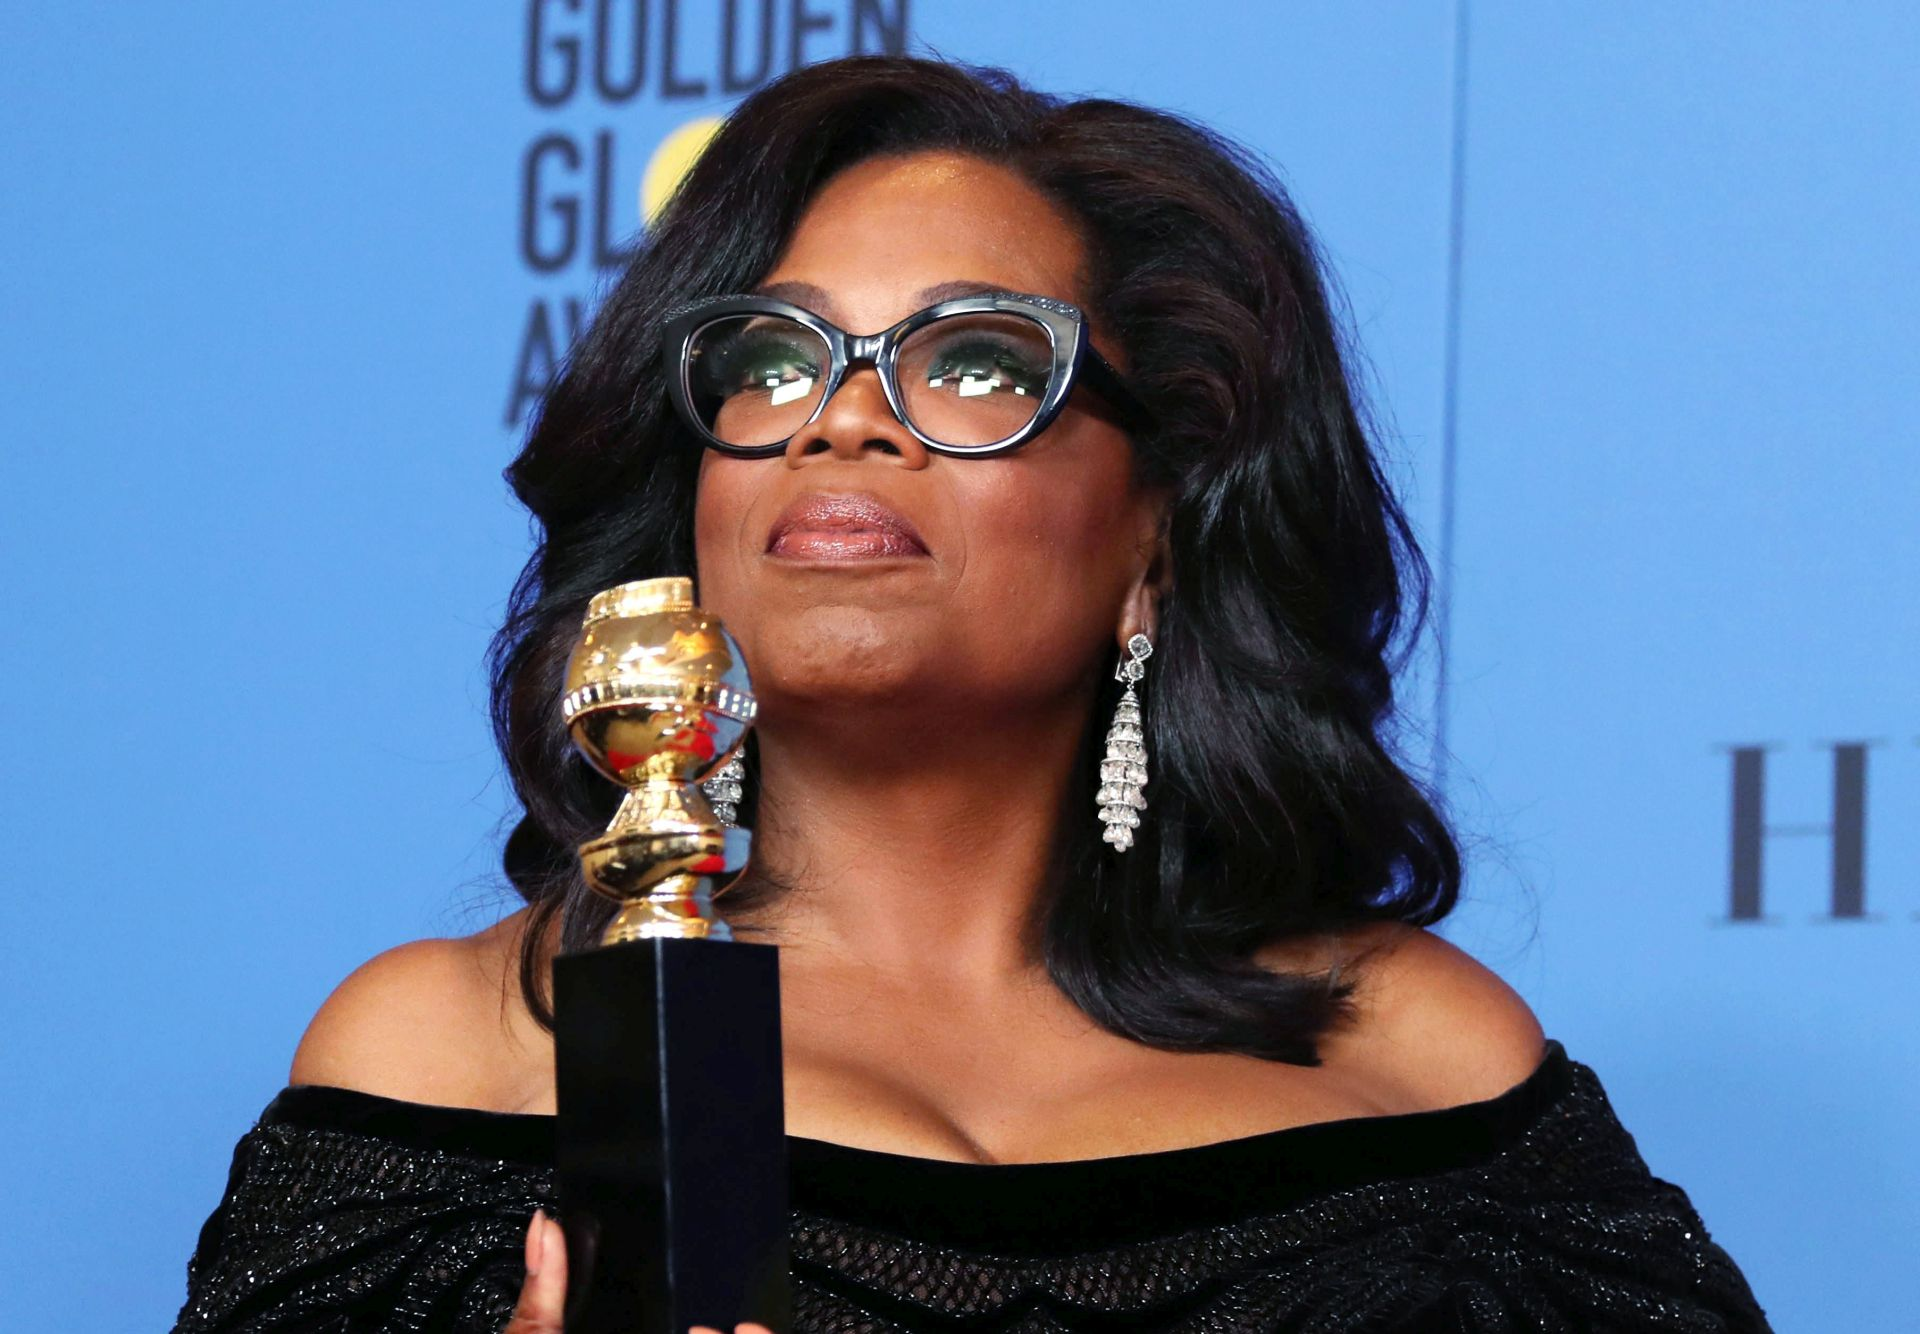 VIDEO: Oprah Winfrey i Apple potpisali ugovor o partnerstvu